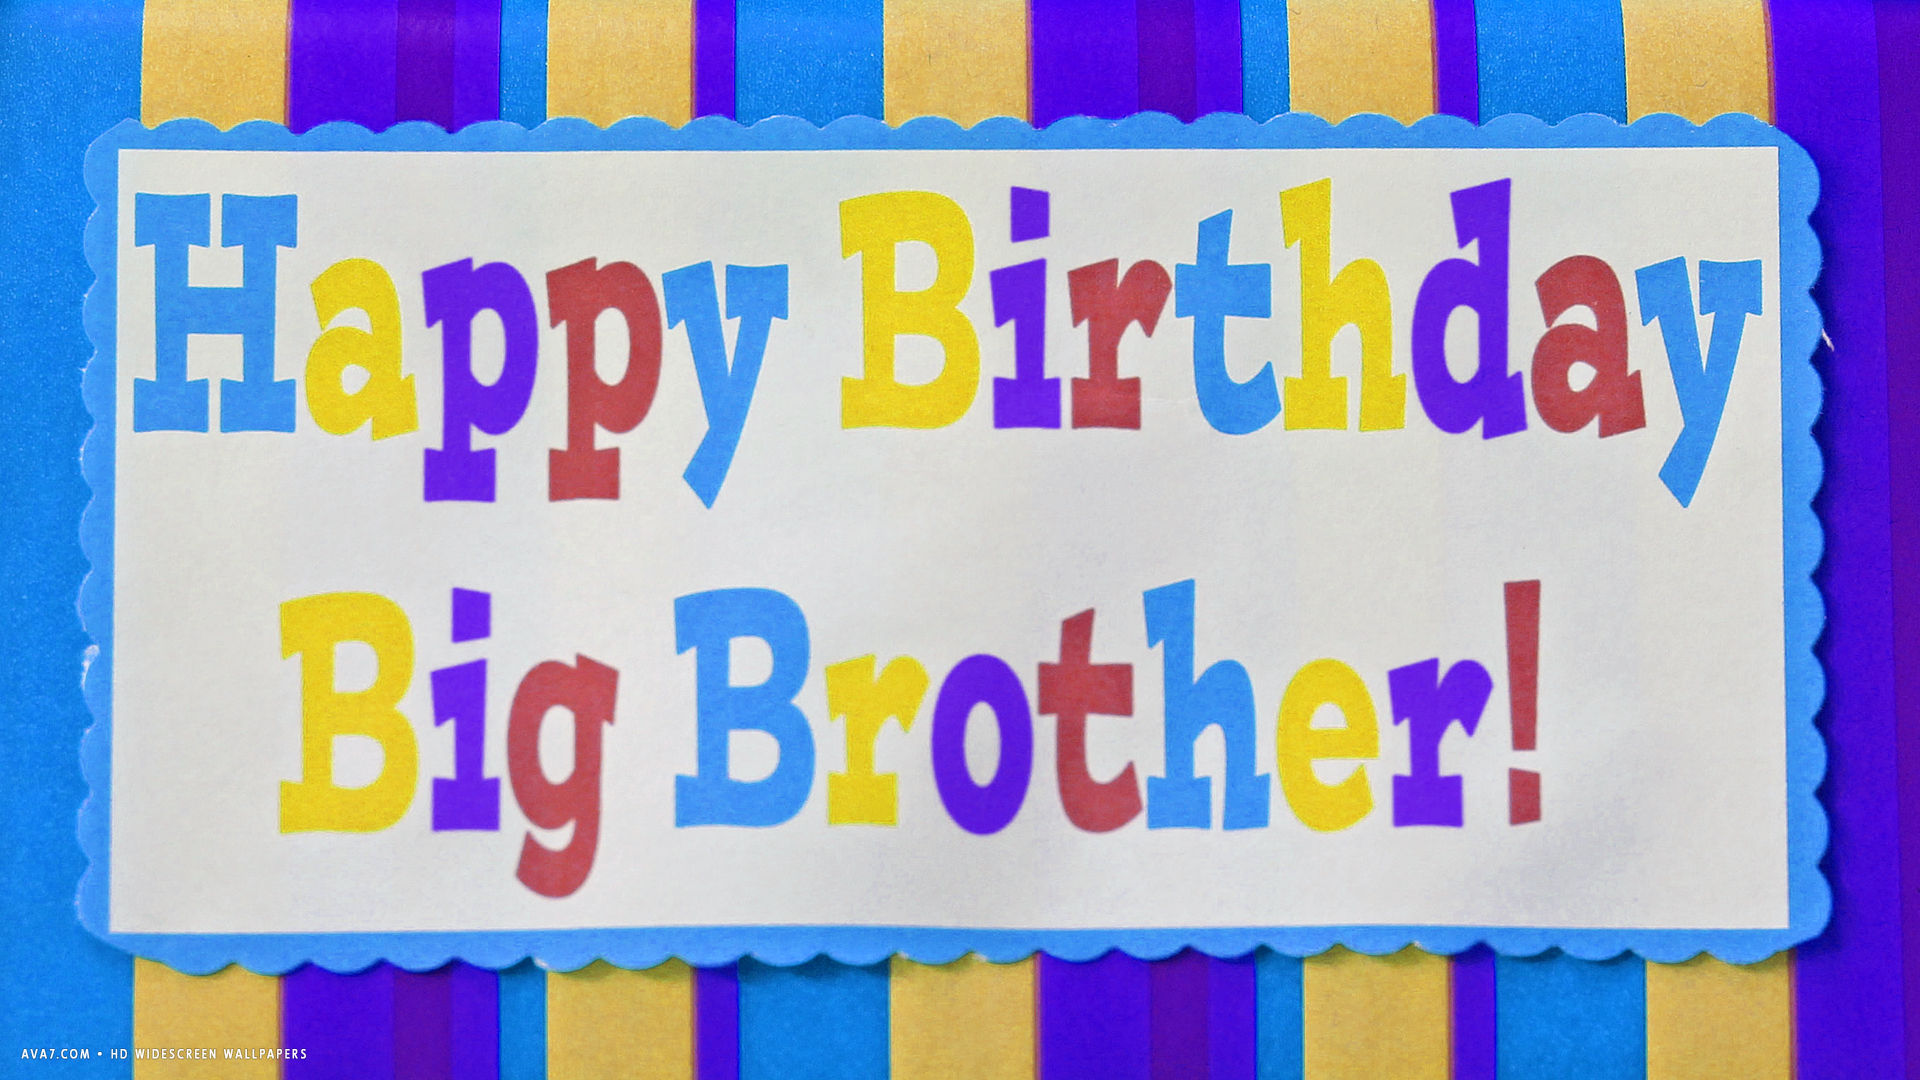 Simple Wallpaper Name Happy Birthday - happy-birthday-big-brother-card-colored-stripes-text  Snapshot_676867.jpg